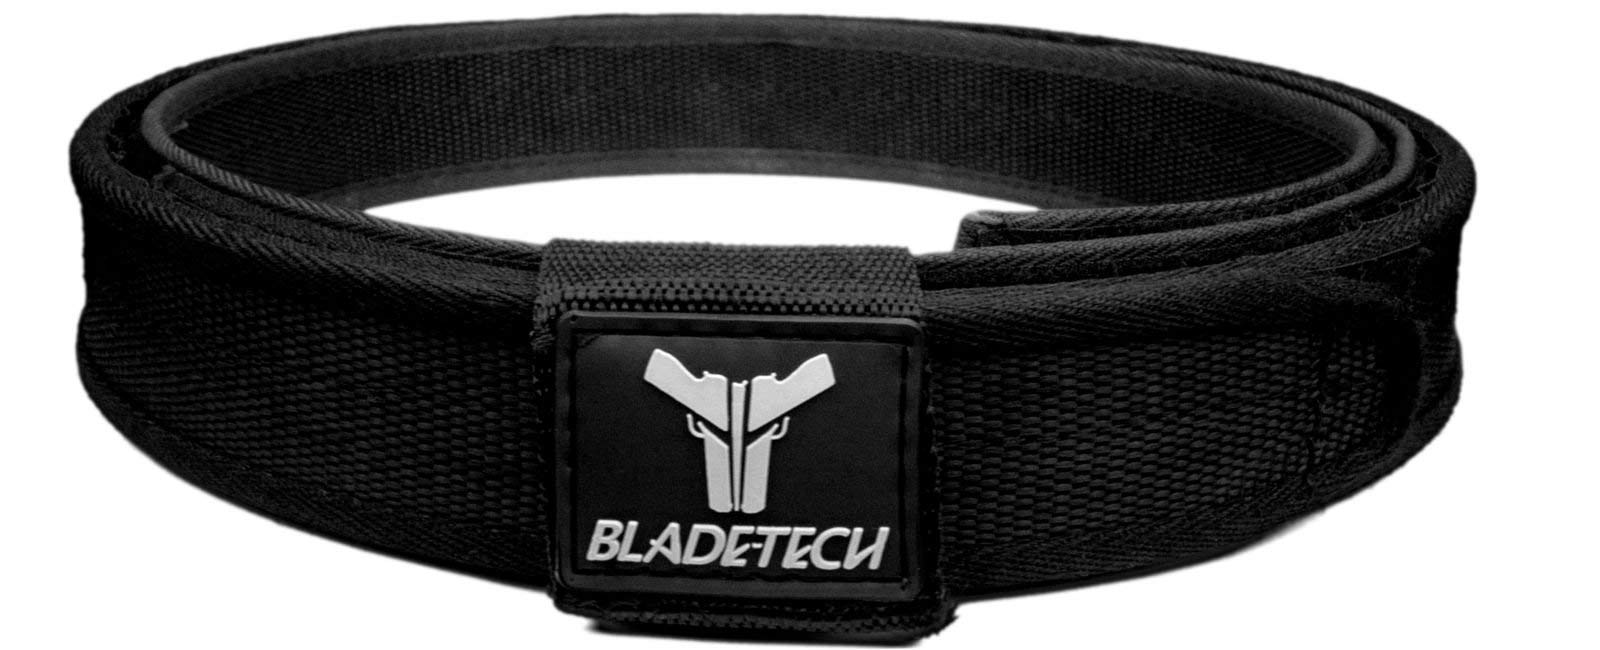 Blade-Tech Competition Gun Belt, 36-Inch, Black by Blade-Tech